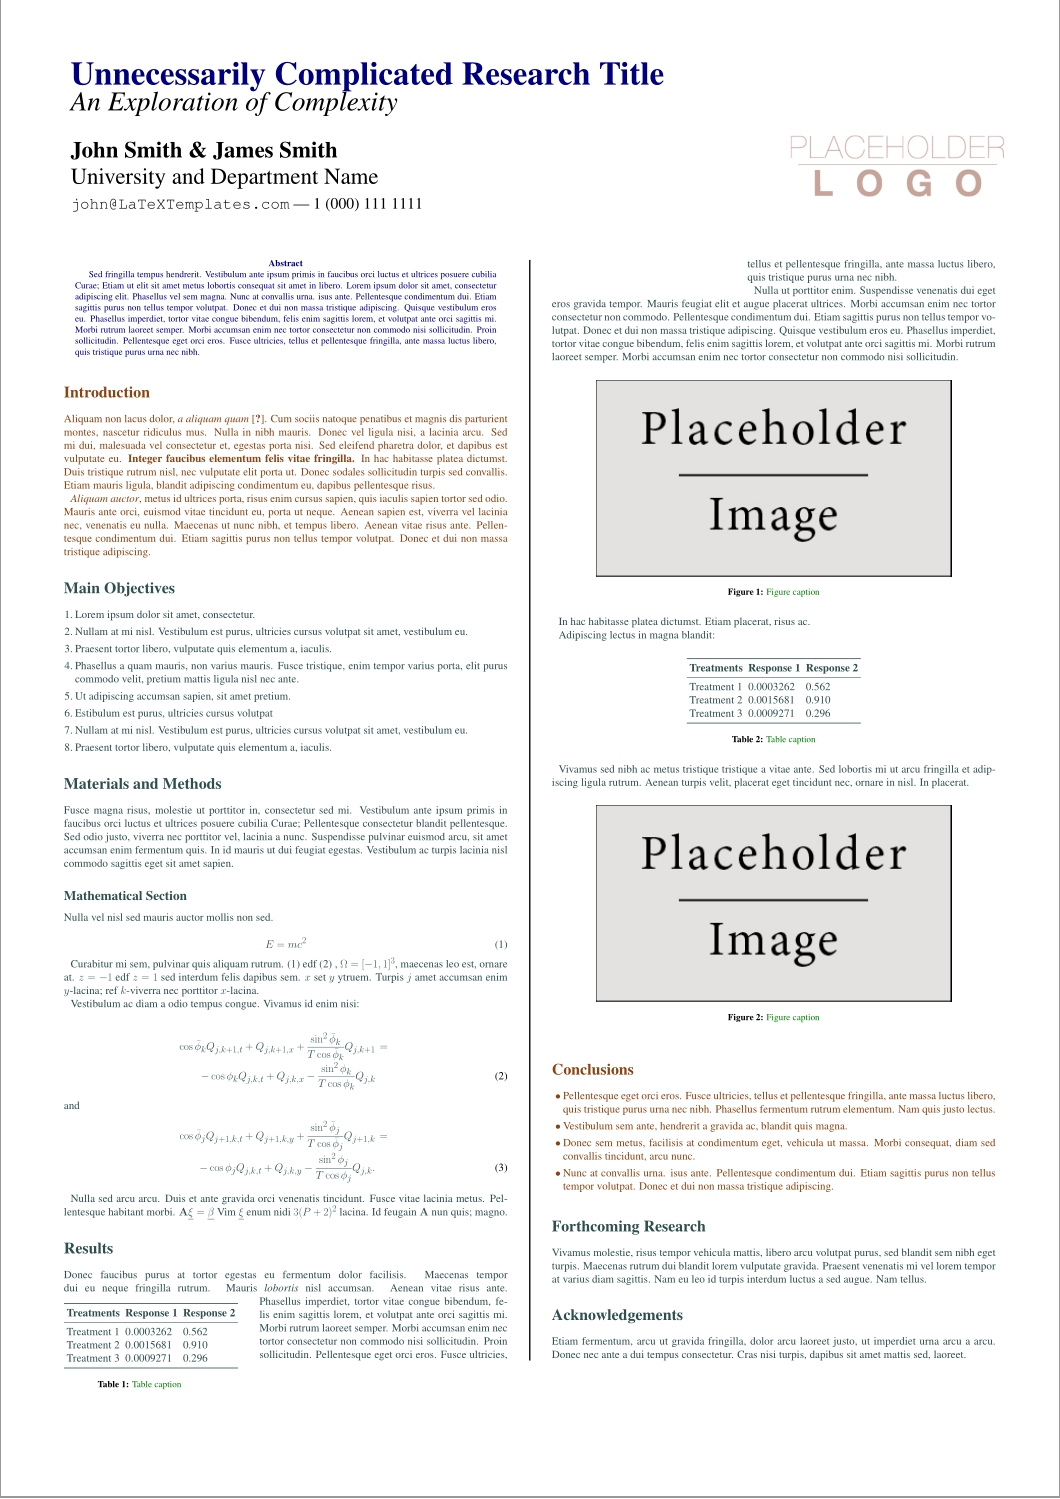 a0poster-conference